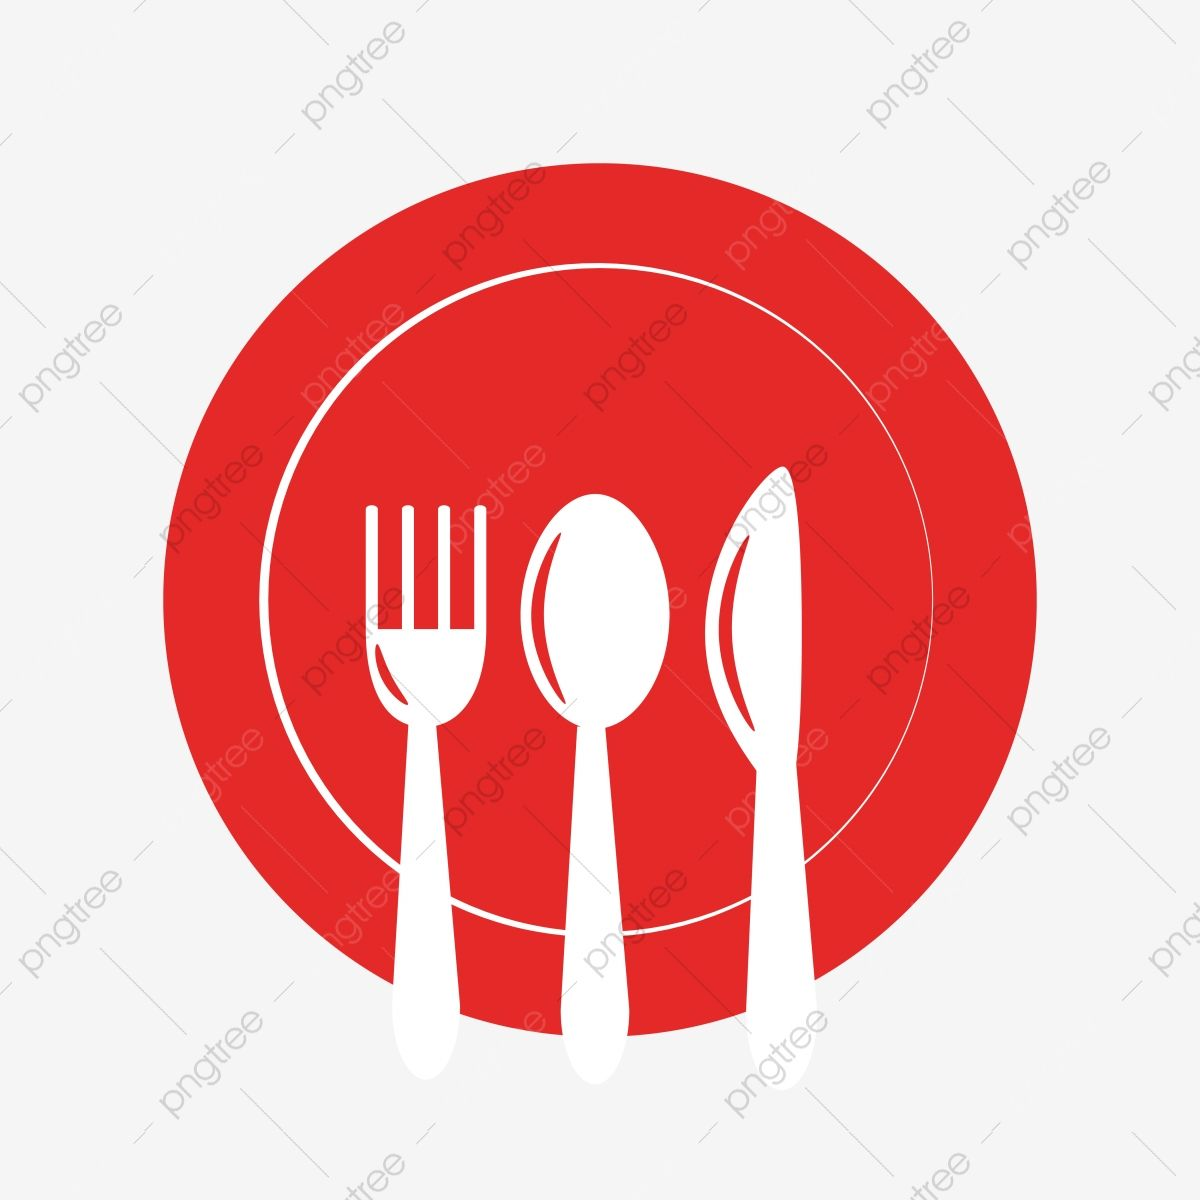 11+ Plate fork and knife clipart ideas in 2021